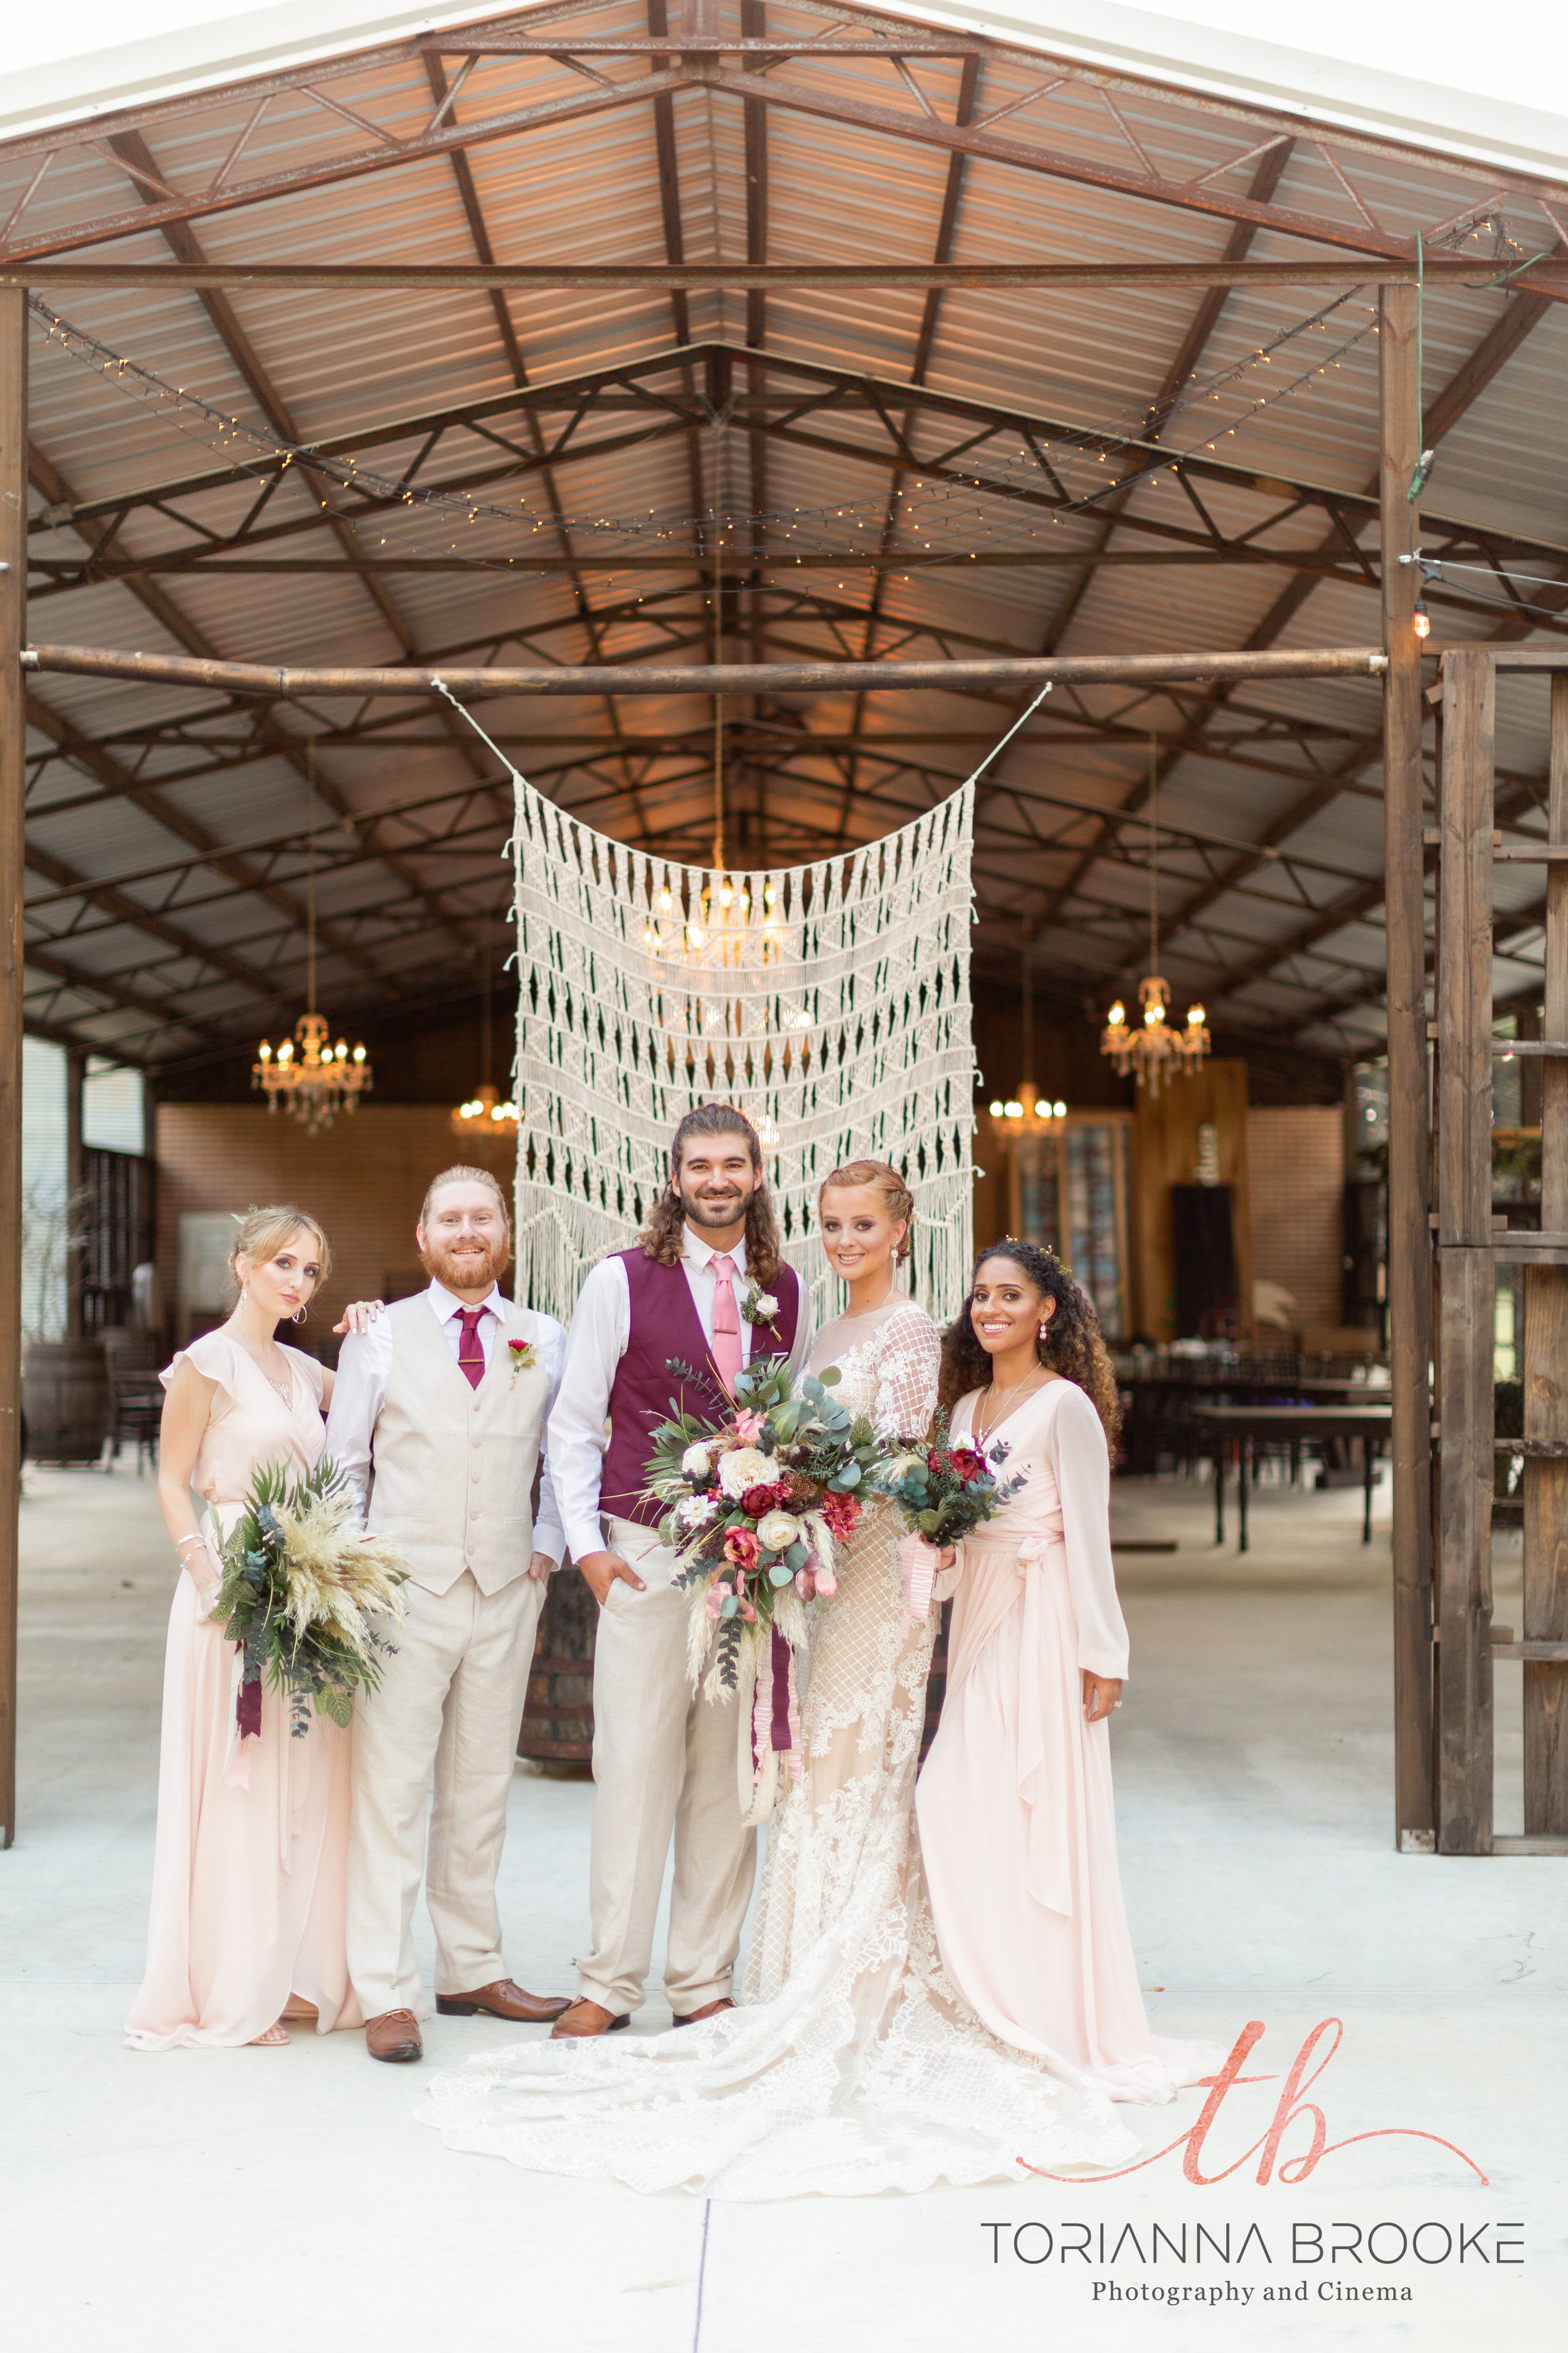 Aren't the colors they chose so stunning? The entire shoot was rose-gold inspired, which we here at I&B absolutely love!